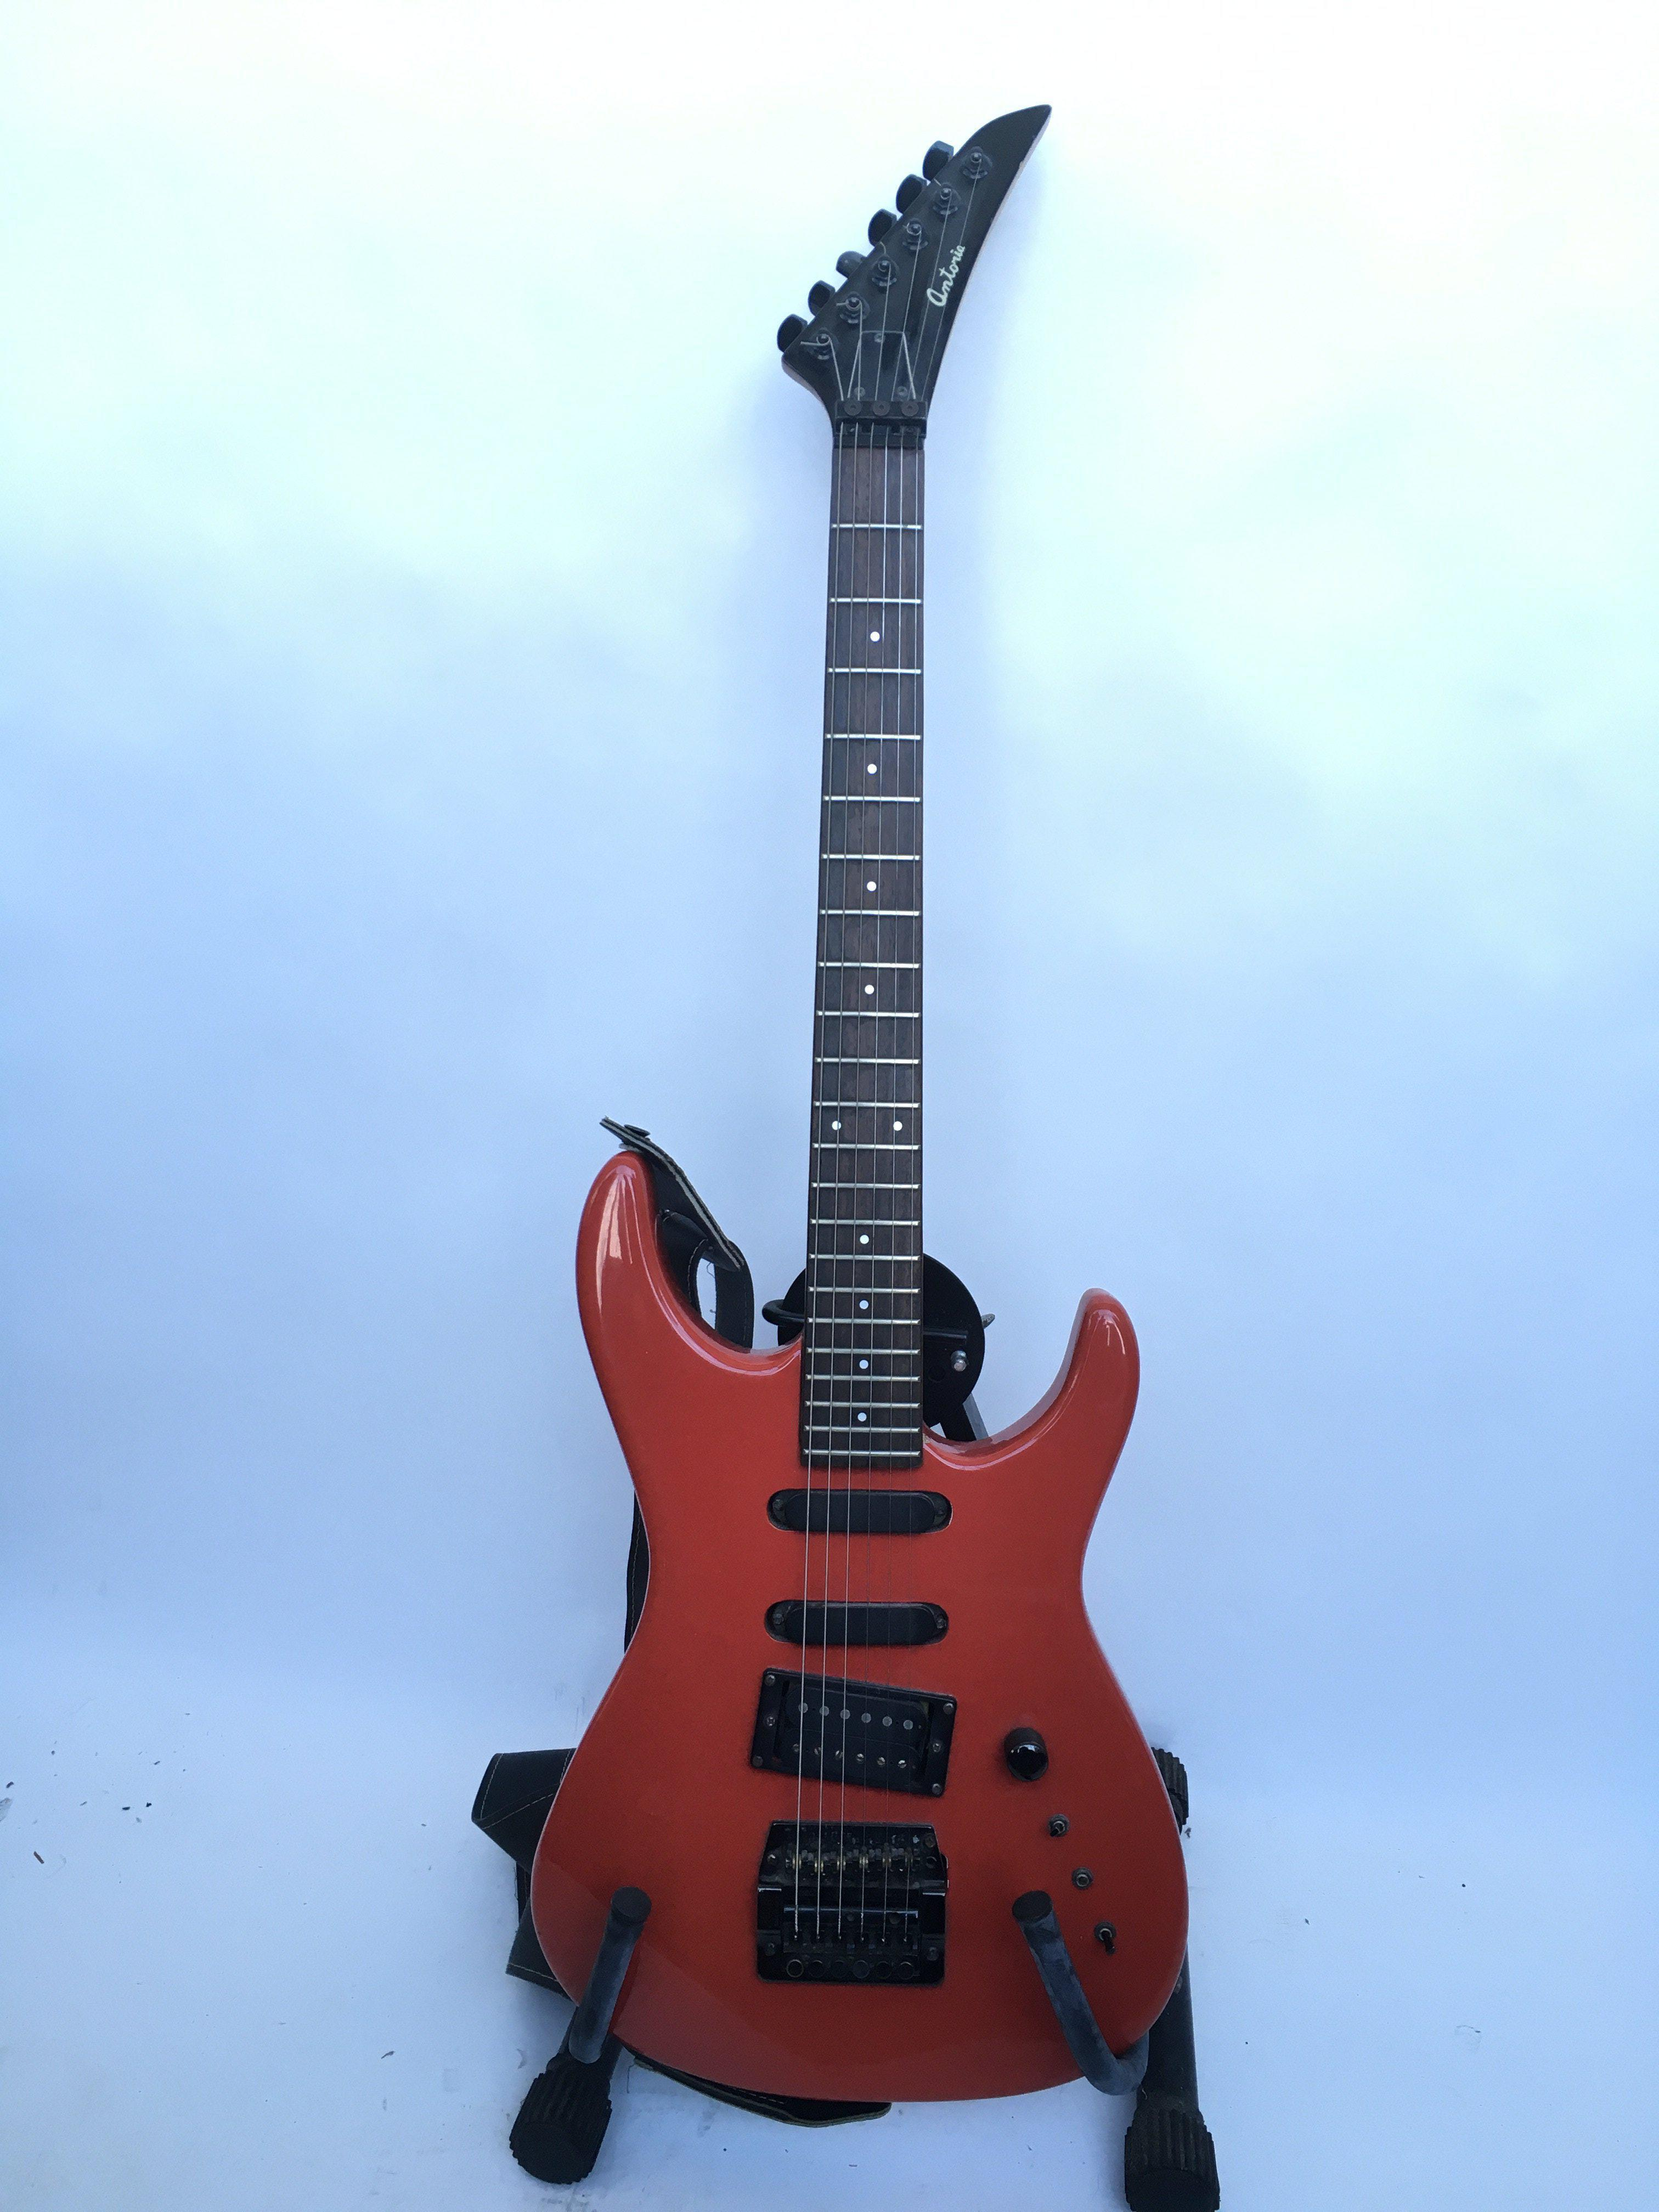 An Antoria electric guitar in red and fitted with